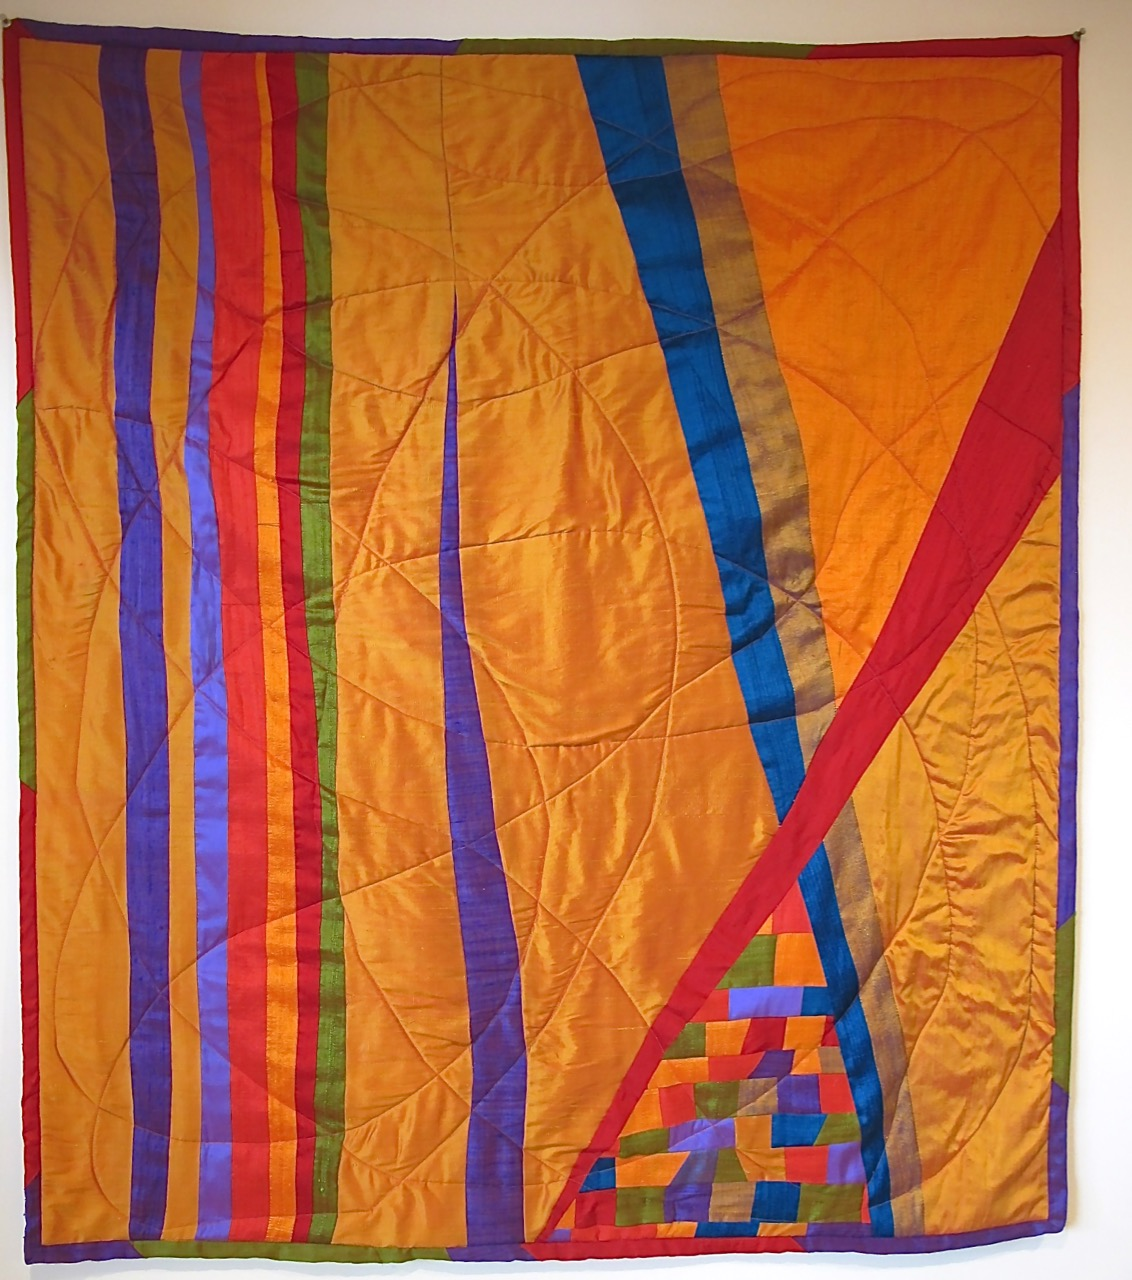 The Silk Quilt by Carol Van Zandt